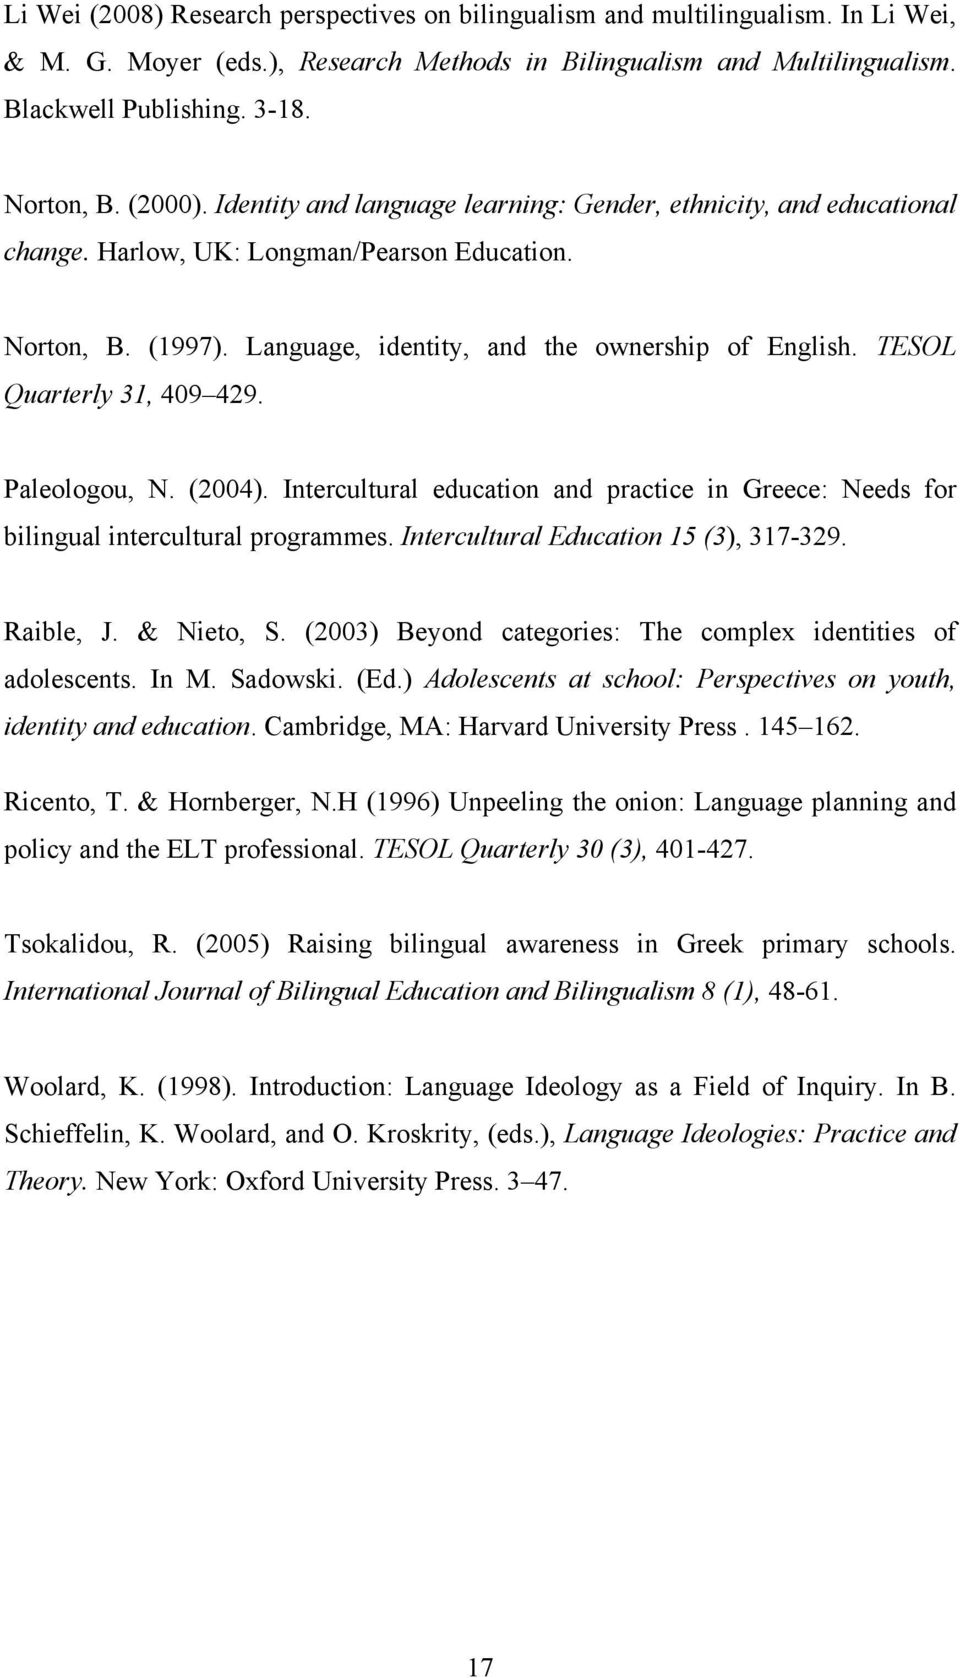 TESOL Quarterly 31, 409 429. Paleologou, N. (2004). Intercultural education and practice in Greece: Needs for bilingual intercultural programmes. Intercultural Education 15 (3), 317-329. Raible, J.